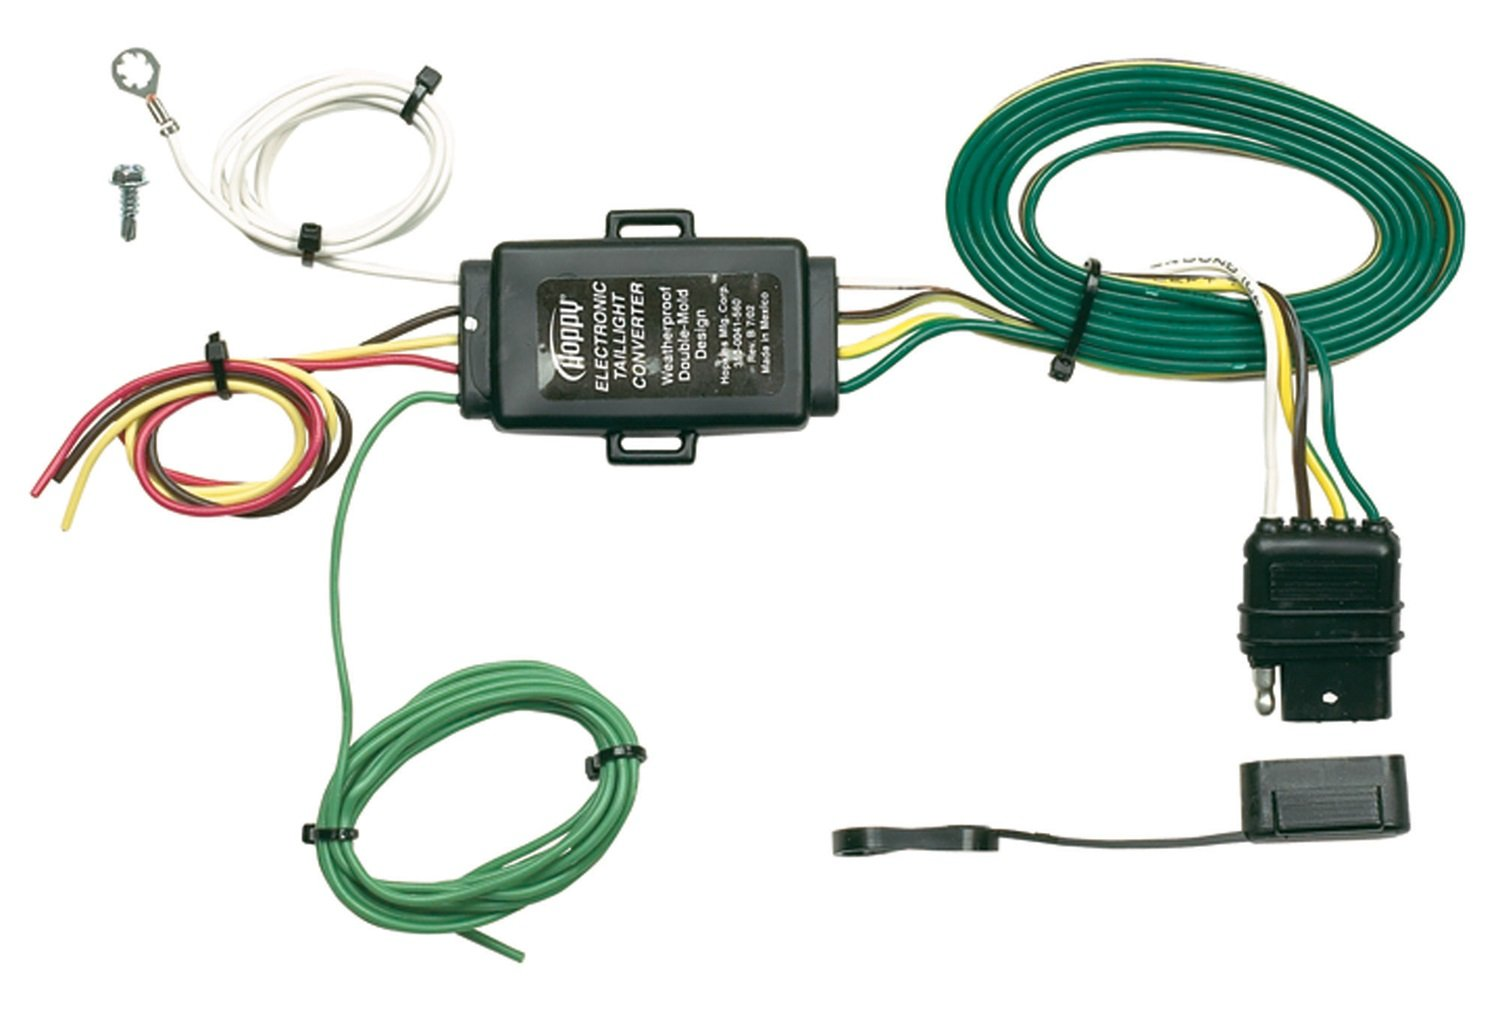 61WaHisQCLL._SL1500_ amazon com hopkins 48925 tail light converter with 4 wire flat wiring diagram for hopkins trailer plug at gsmx.co